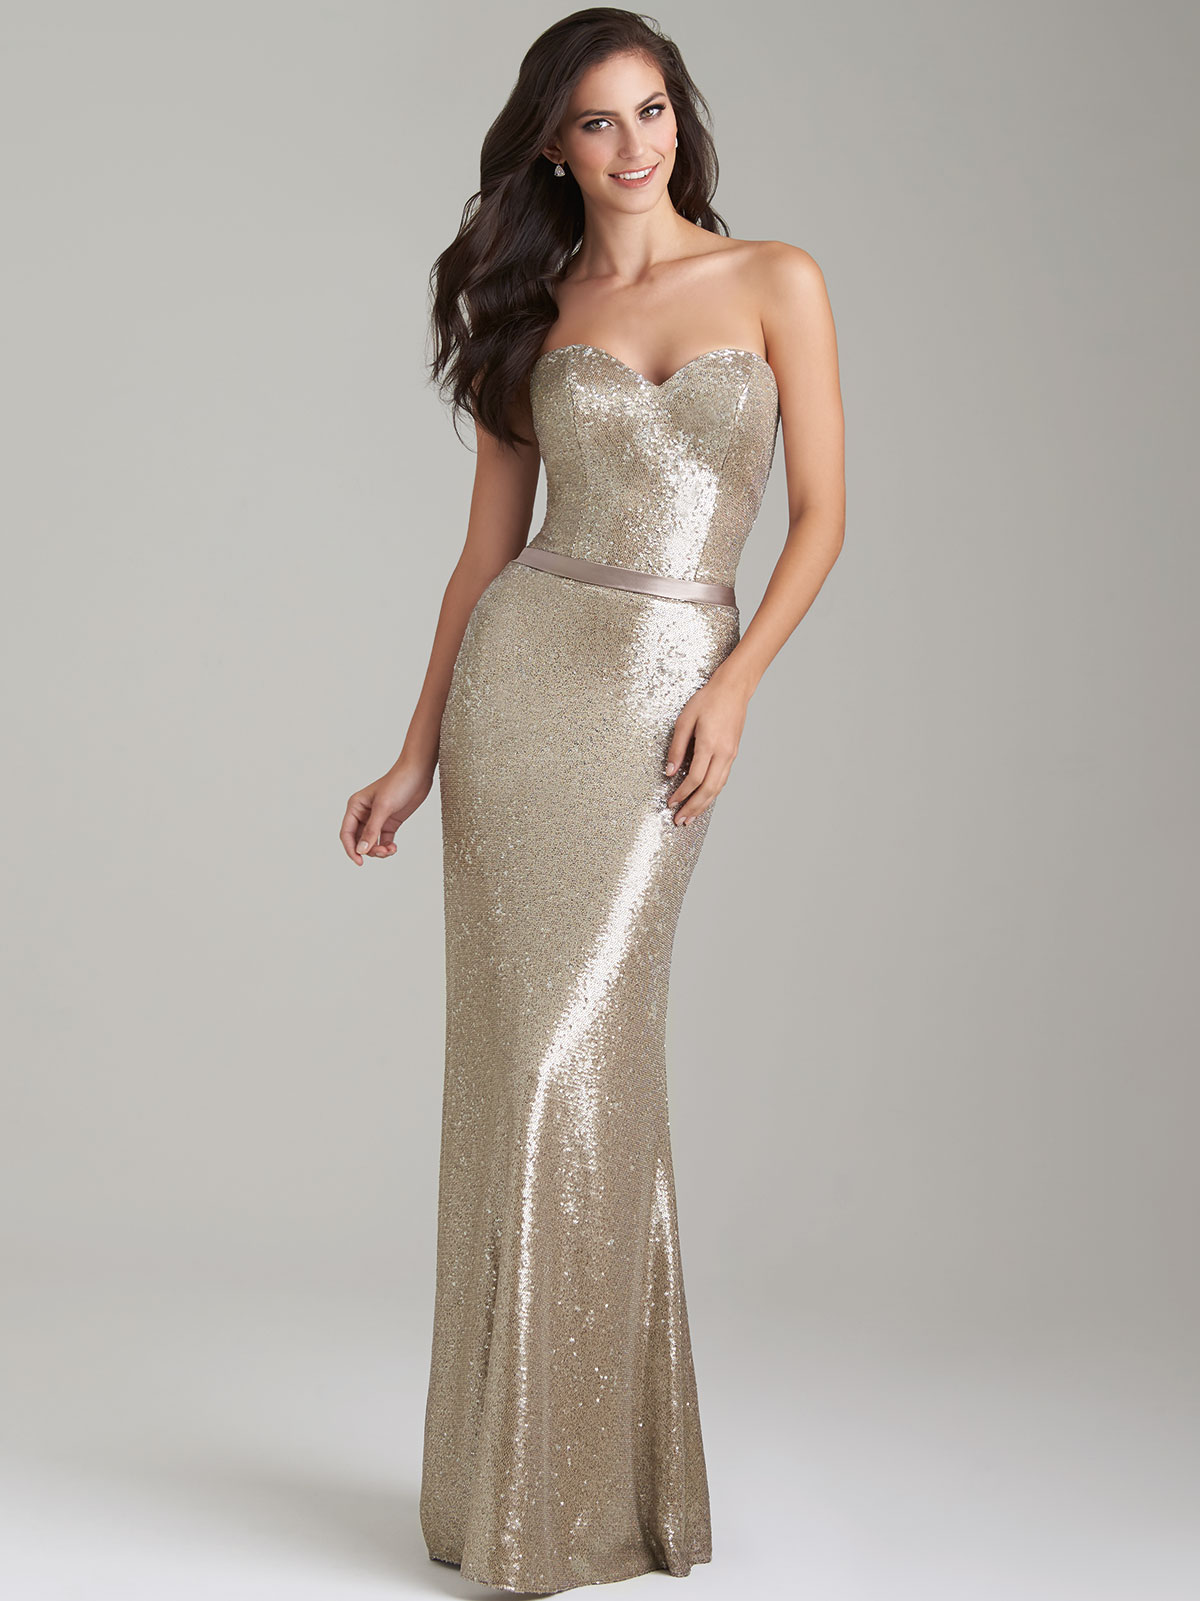 Allure 1471 sequin sweetheart bridesmaid dressdimitradesigns allure 1471 sweetheart bridesmaid dress ombrellifo Images